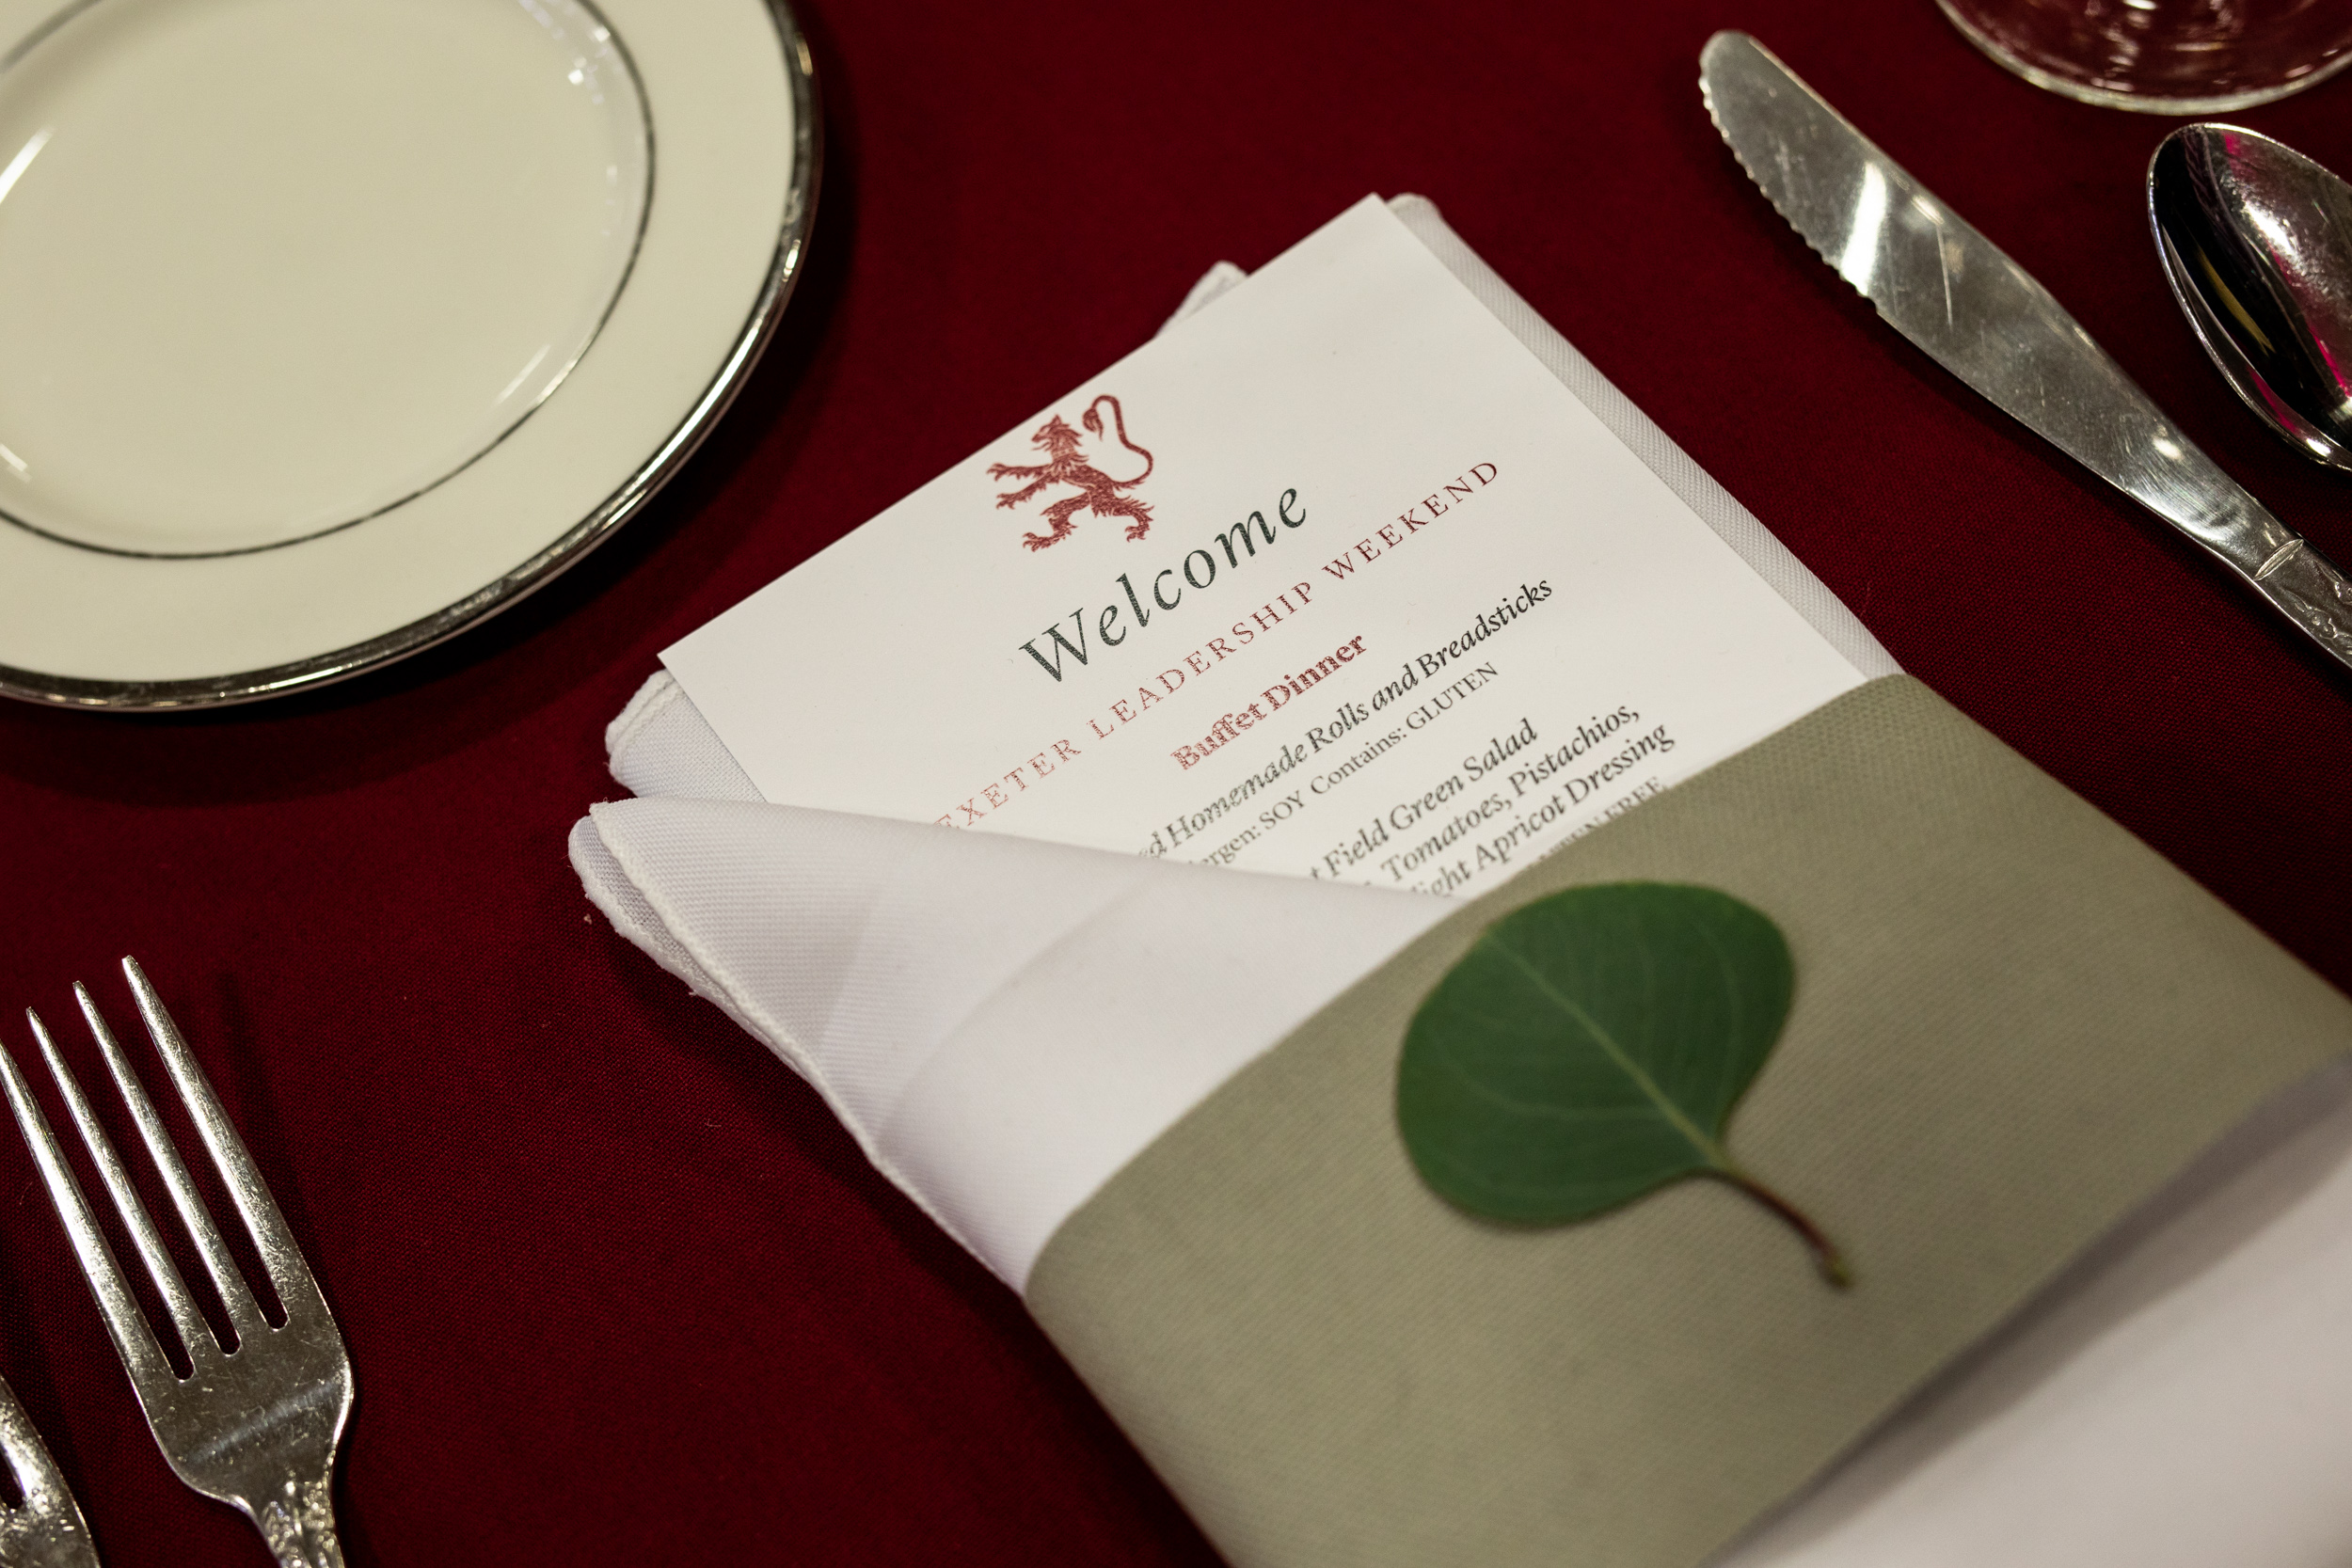 Corporate_Production_Phillips_Exeter_Academy_Pizzuti_Awards_Dinner_menu